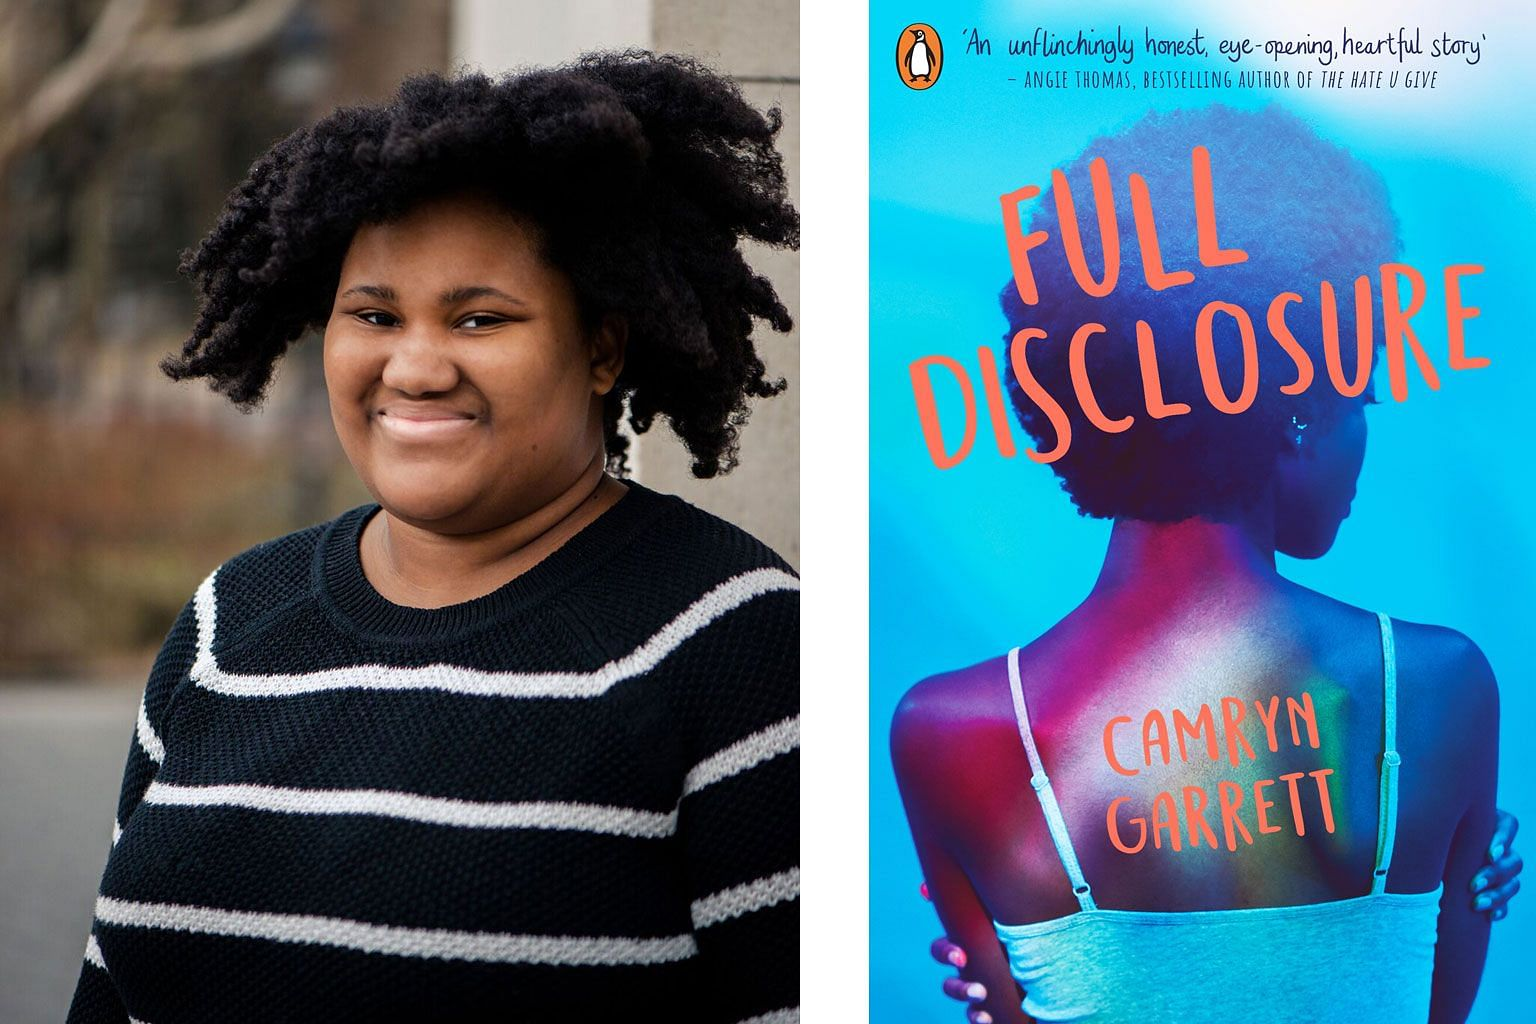 Camryn Garrett (left) is only 19 and wrote her debut novel, Full Disclosure (above), at 17.